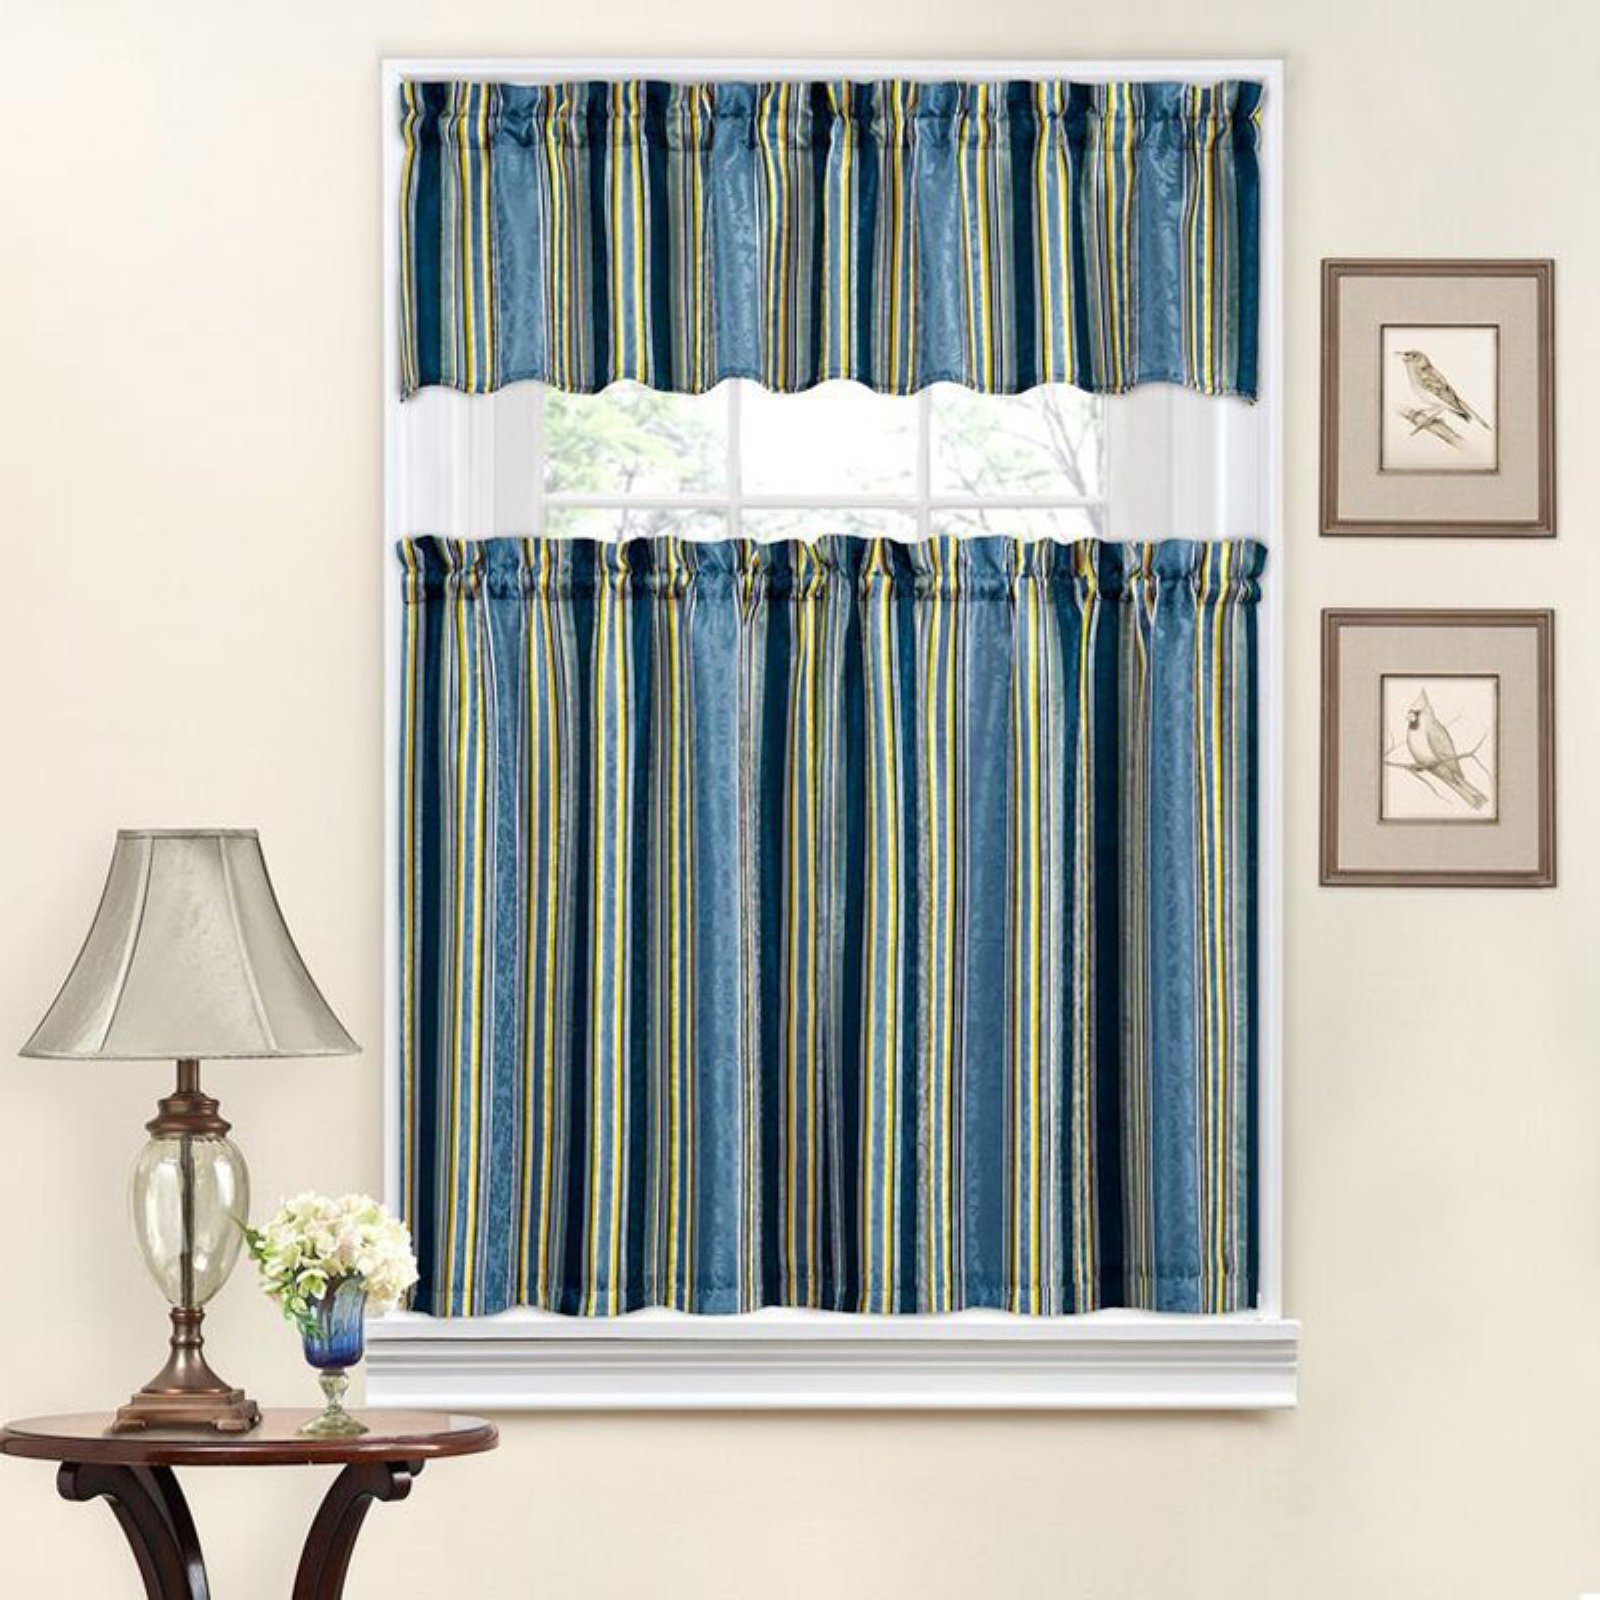 Traditionswaverly Stripe Ensemble Tier And Valance Set With Well Liked Floral Watercolor Semi Sheer Rod Pocket Kitchen Curtain Valance And Tiers Sets (View 18 of 20)